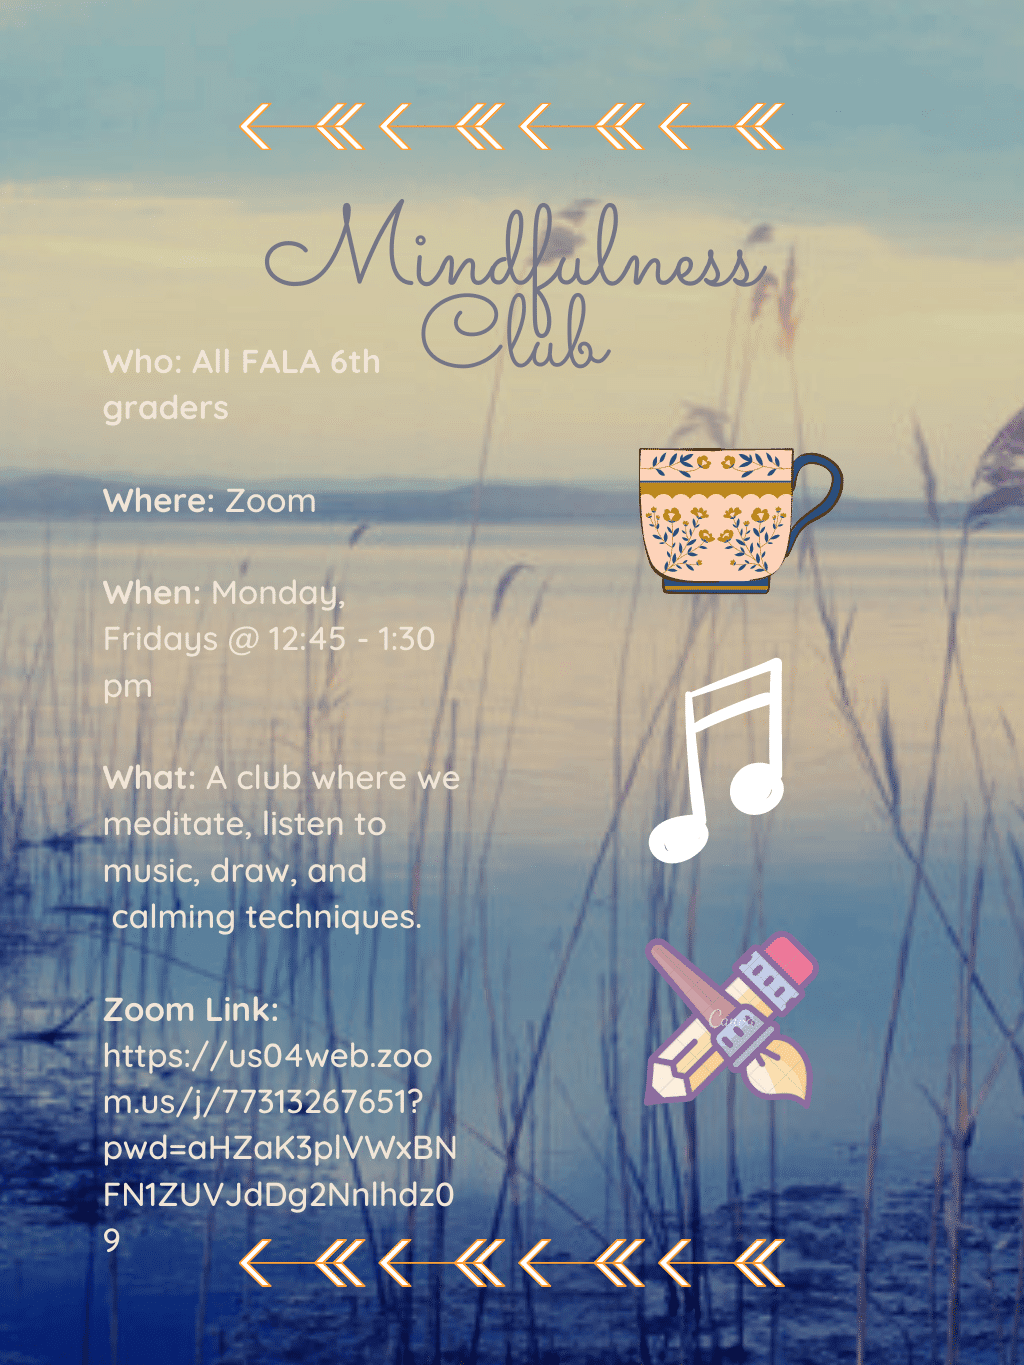 Mindfullness Club Zoom Flyer